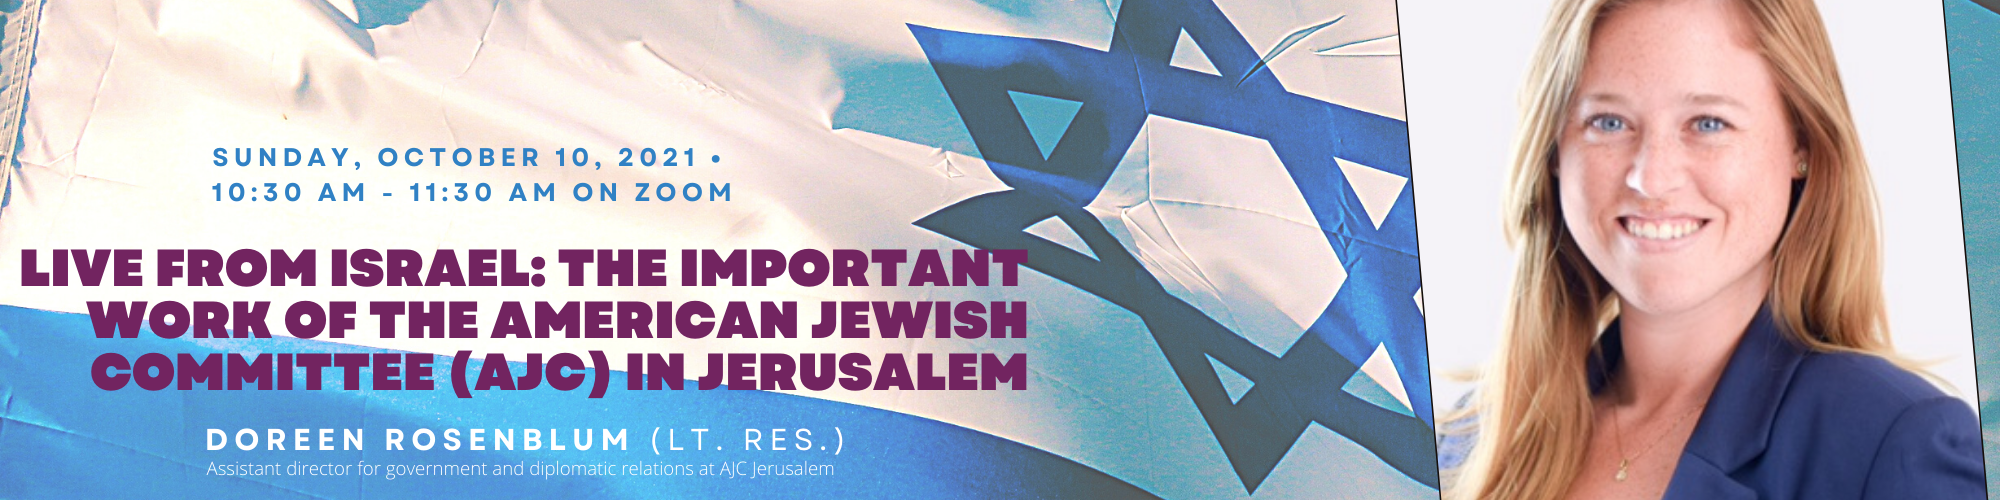 """<a href=""""https://www.adath-israel.org/event/AJC_Program""""                                     target="""""""">                                                                 <span class=""""slider_title"""">                                     Live from Israel: The important work of the American Jewish Committee (AJC) in Jerusalem.                                </span>                                                                 </a>                                                                                                                                                                                       <span class=""""slider_description"""">Learn about the important work of the American Jewish Committee (AJC) in Jerusalem.</span>                                                                                     <a href=""""https://www.adath-israel.org/event/AJC_Program"""" class=""""slider_link""""                             target="""""""">                             Register today!                            </a>"""